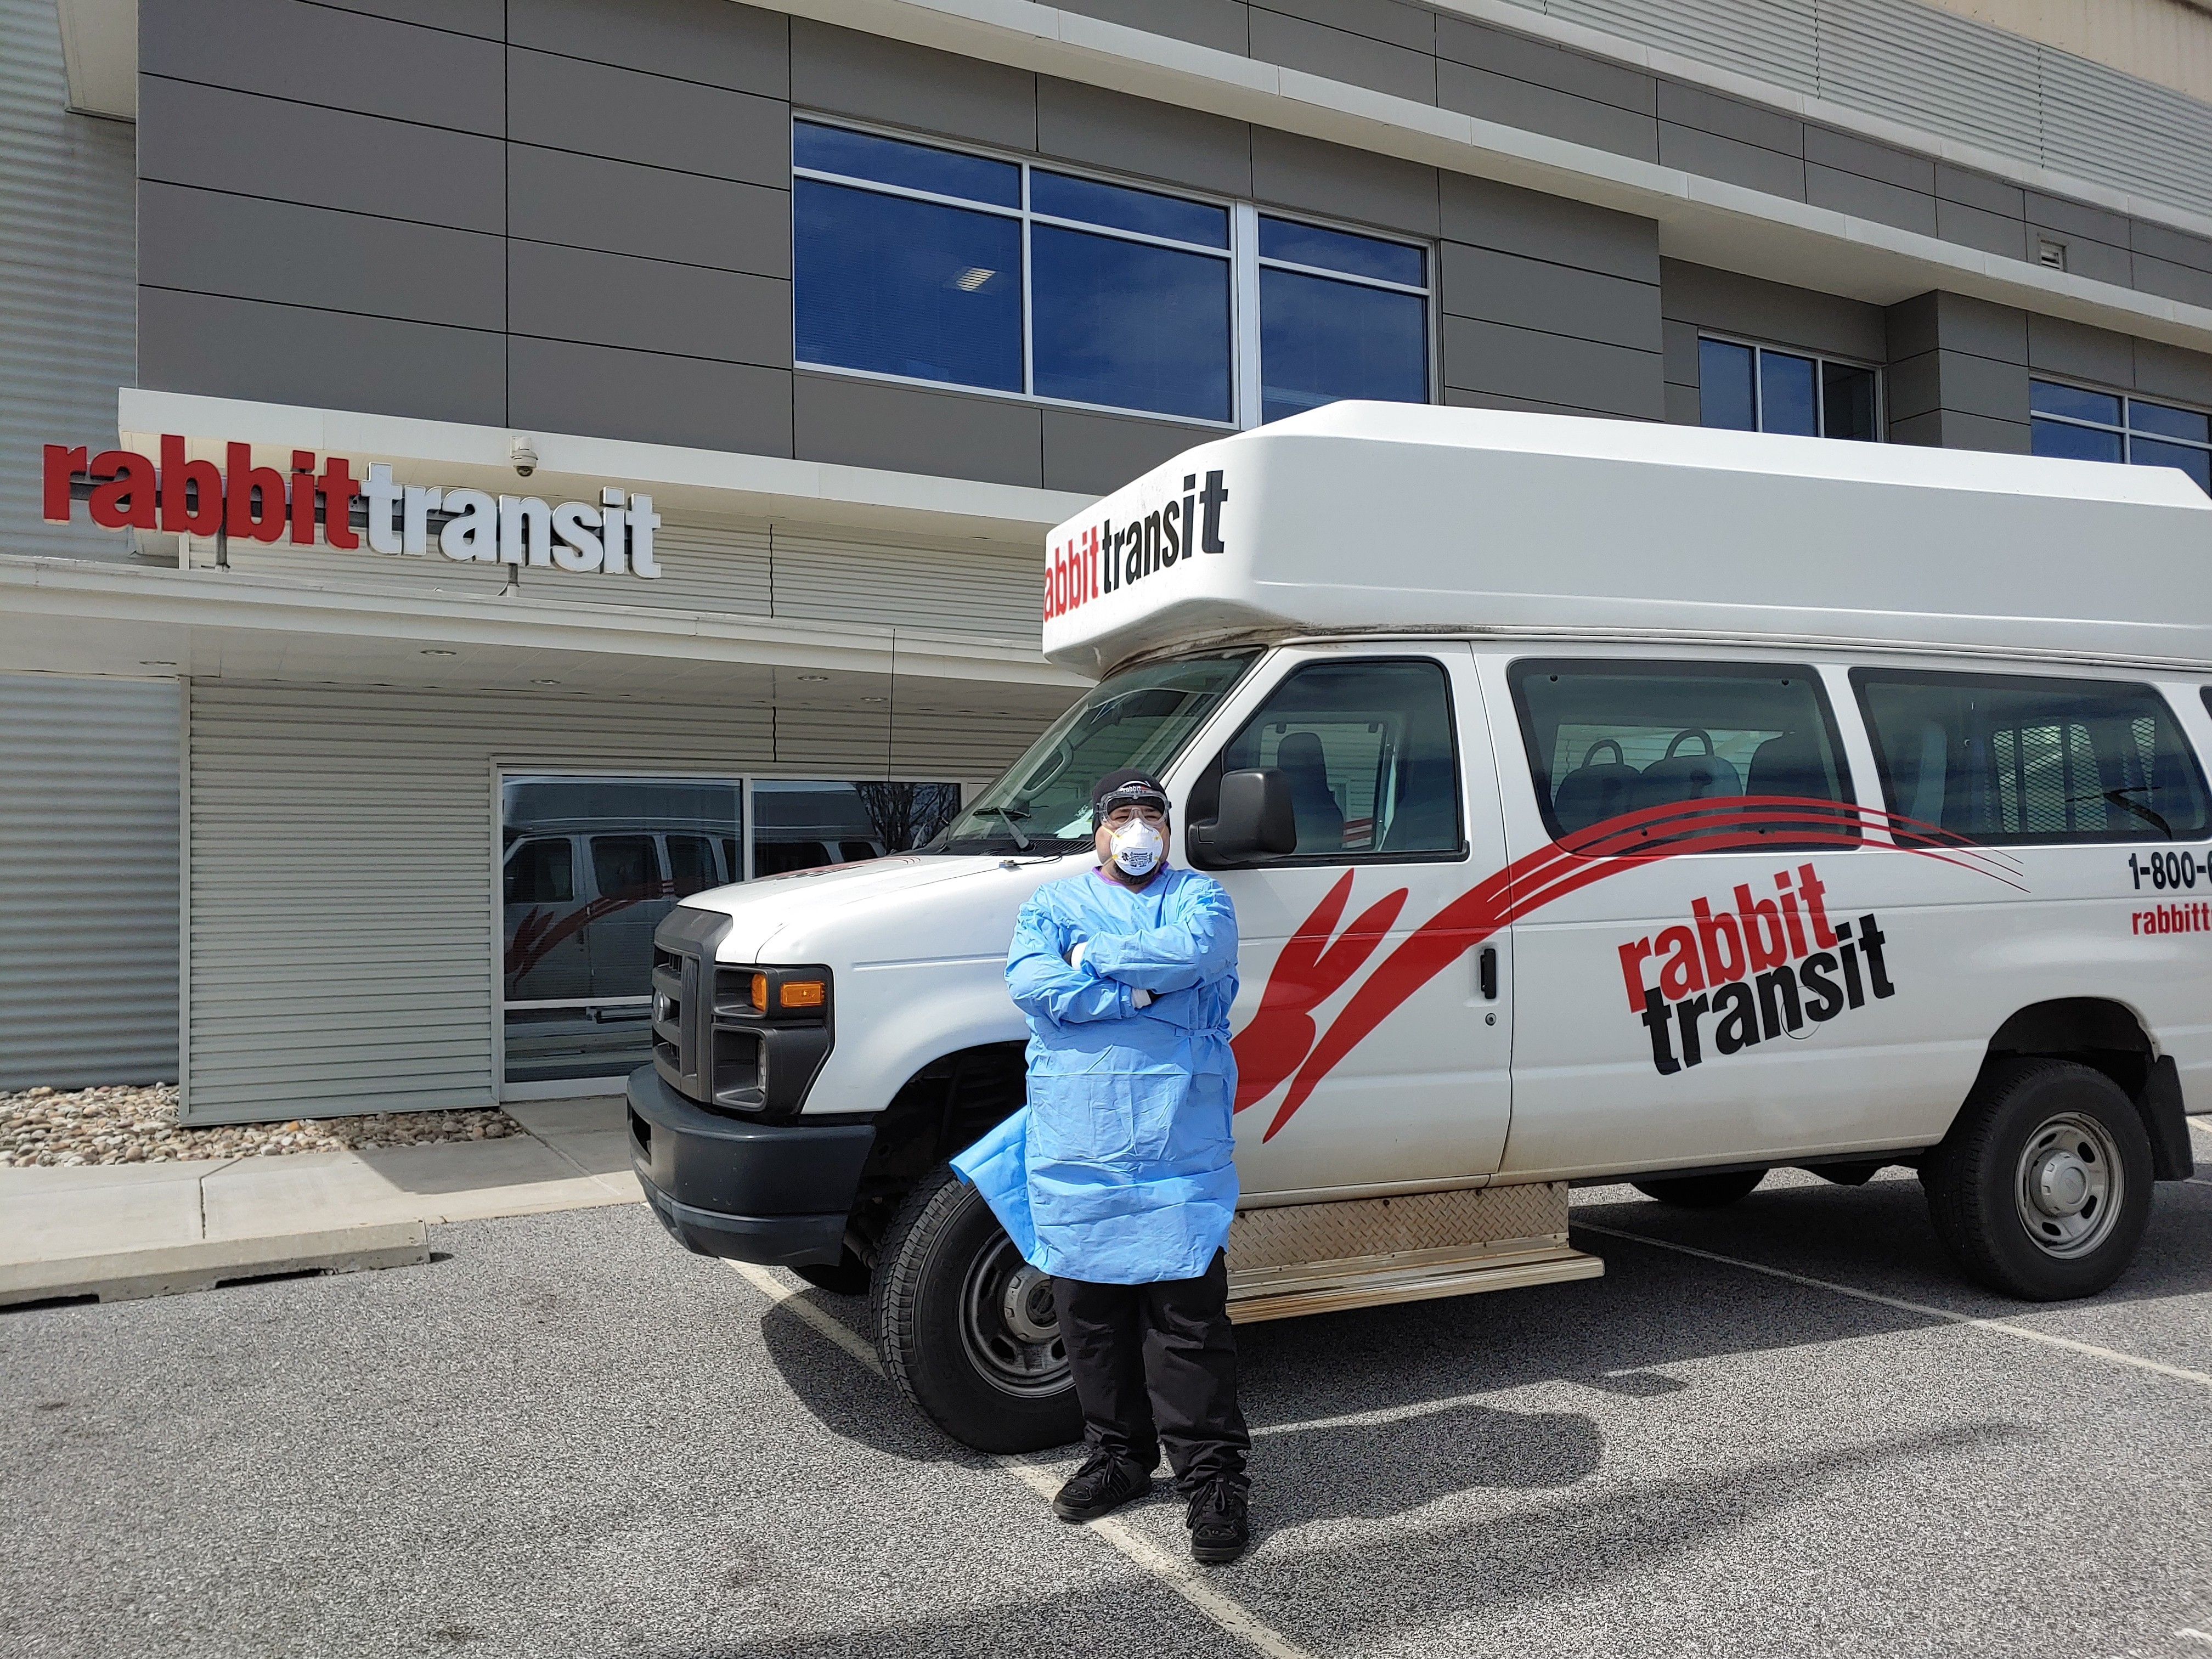 """While supplies last, rabbittransit operator Josh Medina outfits with mask and hospital gown to protect himself and his clientele. """"We are running very low [on supplies],"""" says CEO Richard Farr. """"We have ordered a ton but the delivery dates keep getting pushed back."""""""